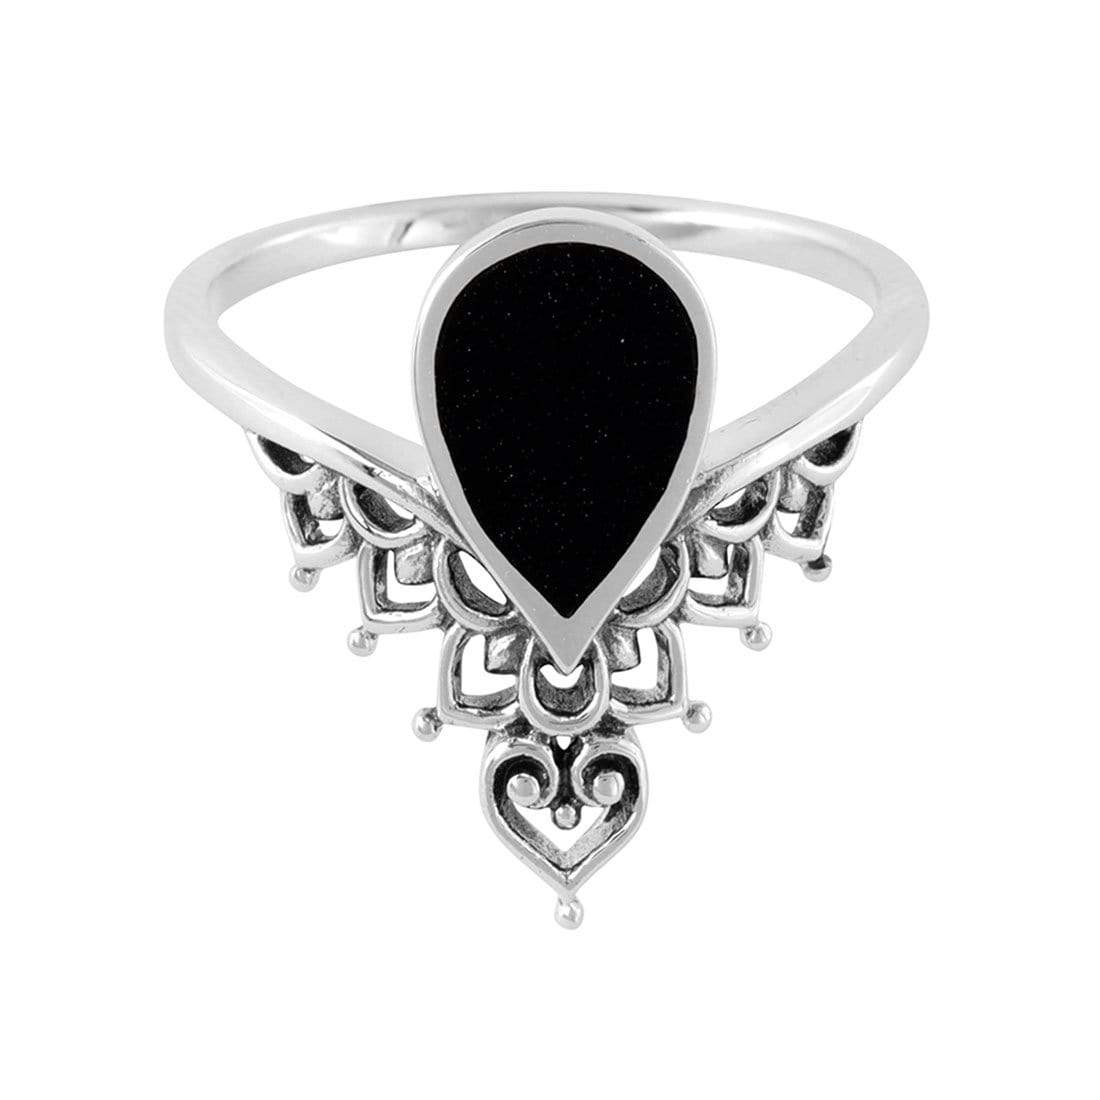 Midsummer Star Ring Spider's Dream Onyx Ring